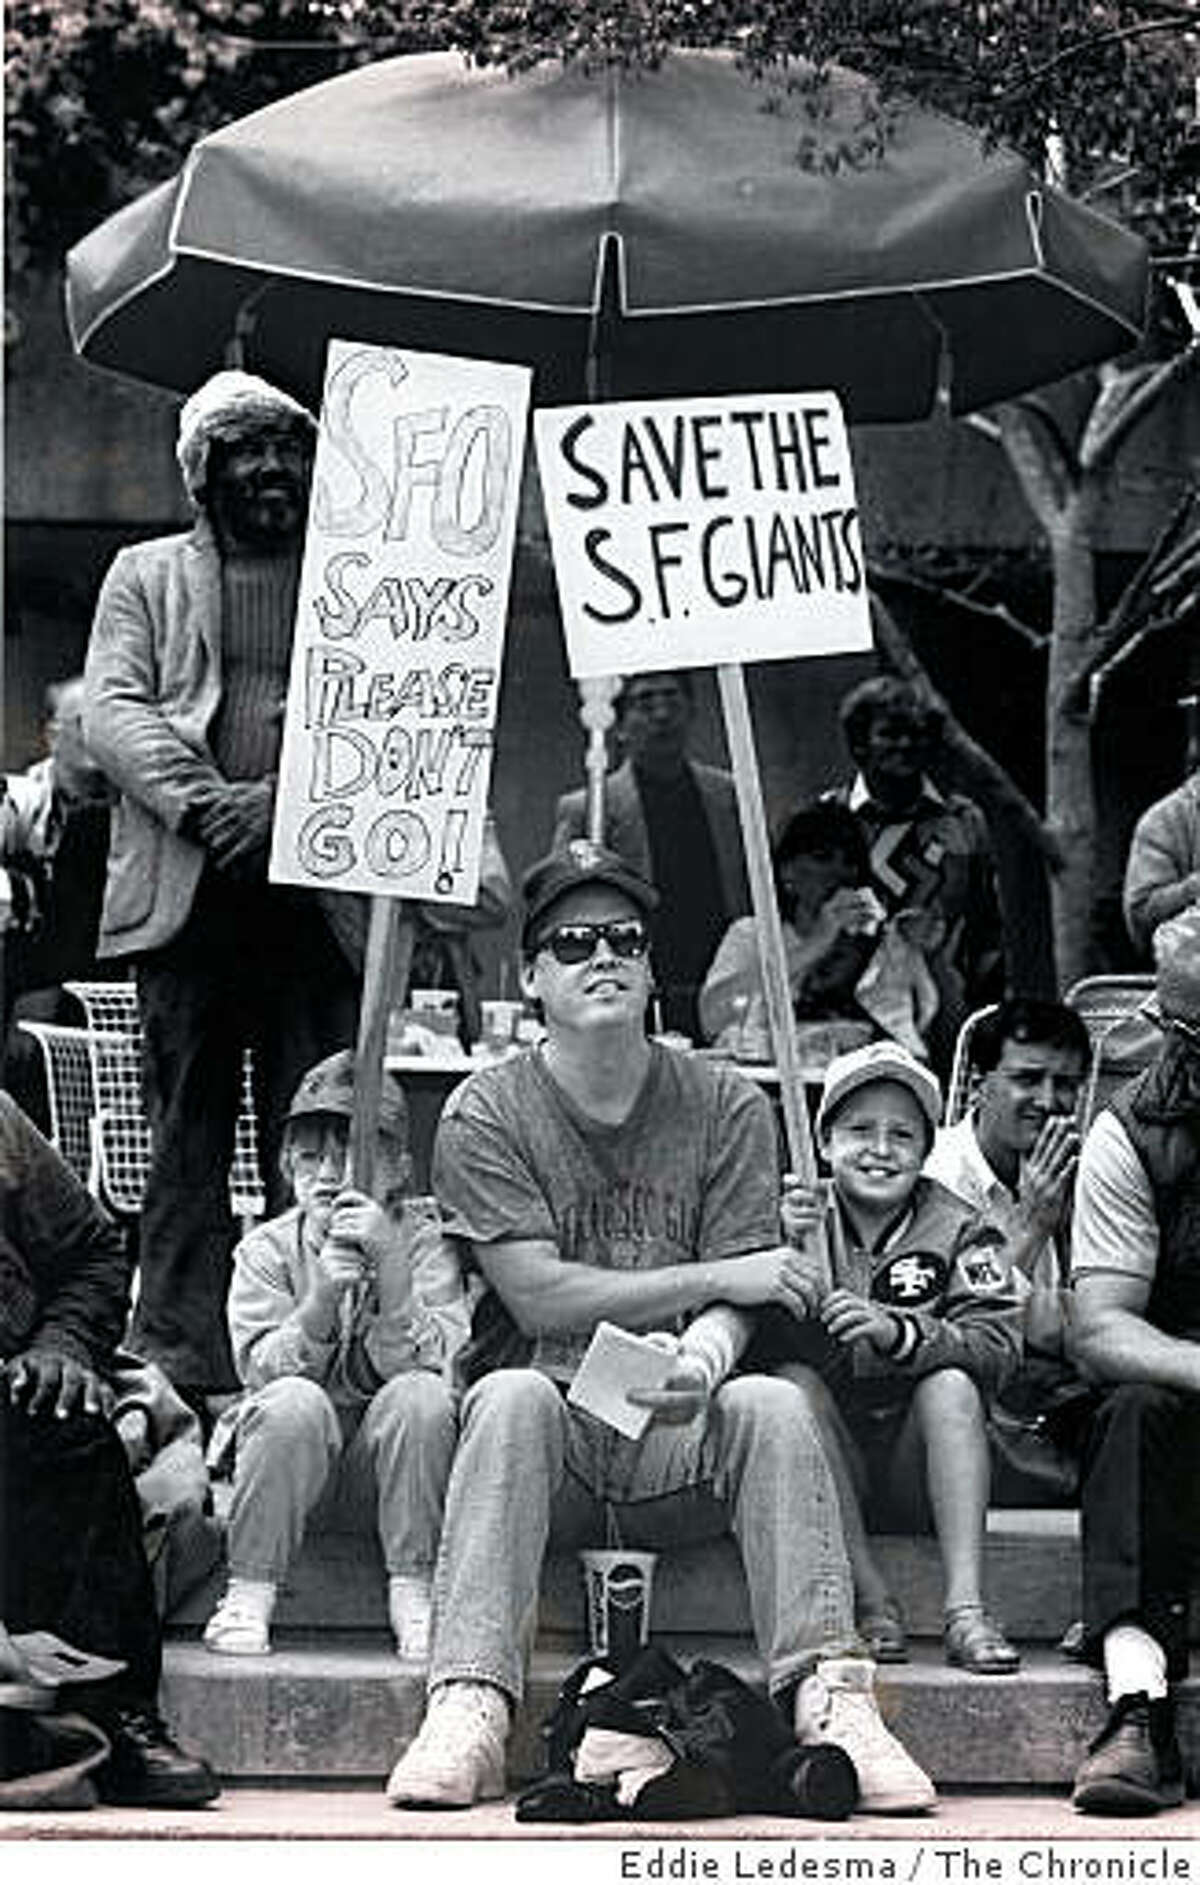 (From left) Katie Fischer, 7, Joe Fischer, 35, and Kelly Fischer, 9, attend a Save the Giants rally to keep them in San Francisco. Aug. 28, 1992. The last time a professional sports team packed its bags to leave San Francisco, the city responded with tenacious force. There were public rallies, private meetings and everything in-between, with the mayor in the thick of the fray. But that was 1992. The team was the Giants, not the 49ers.